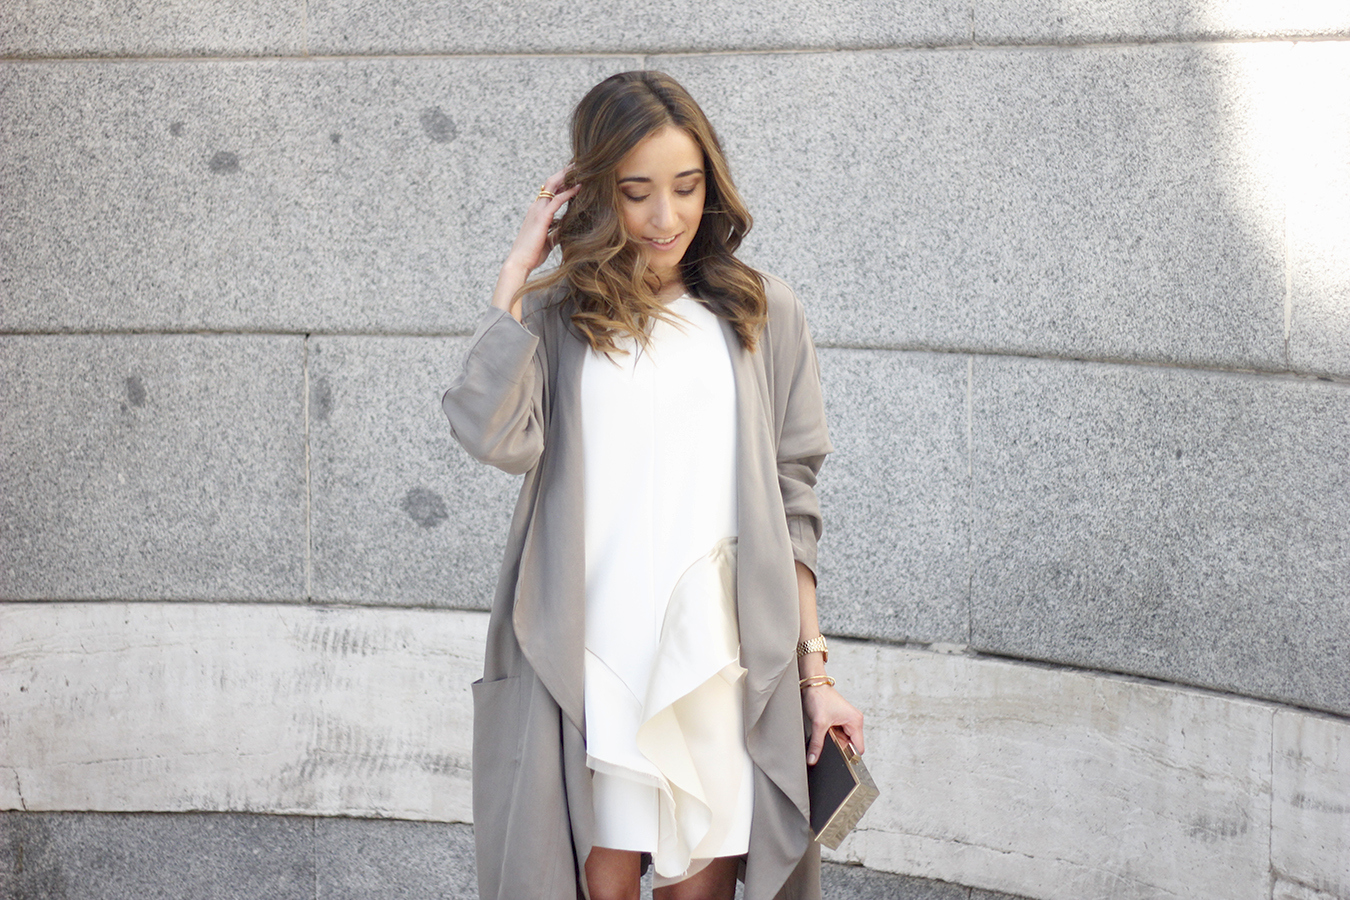 White dress with ruffles trench nude heels clutch accessories outfit style13